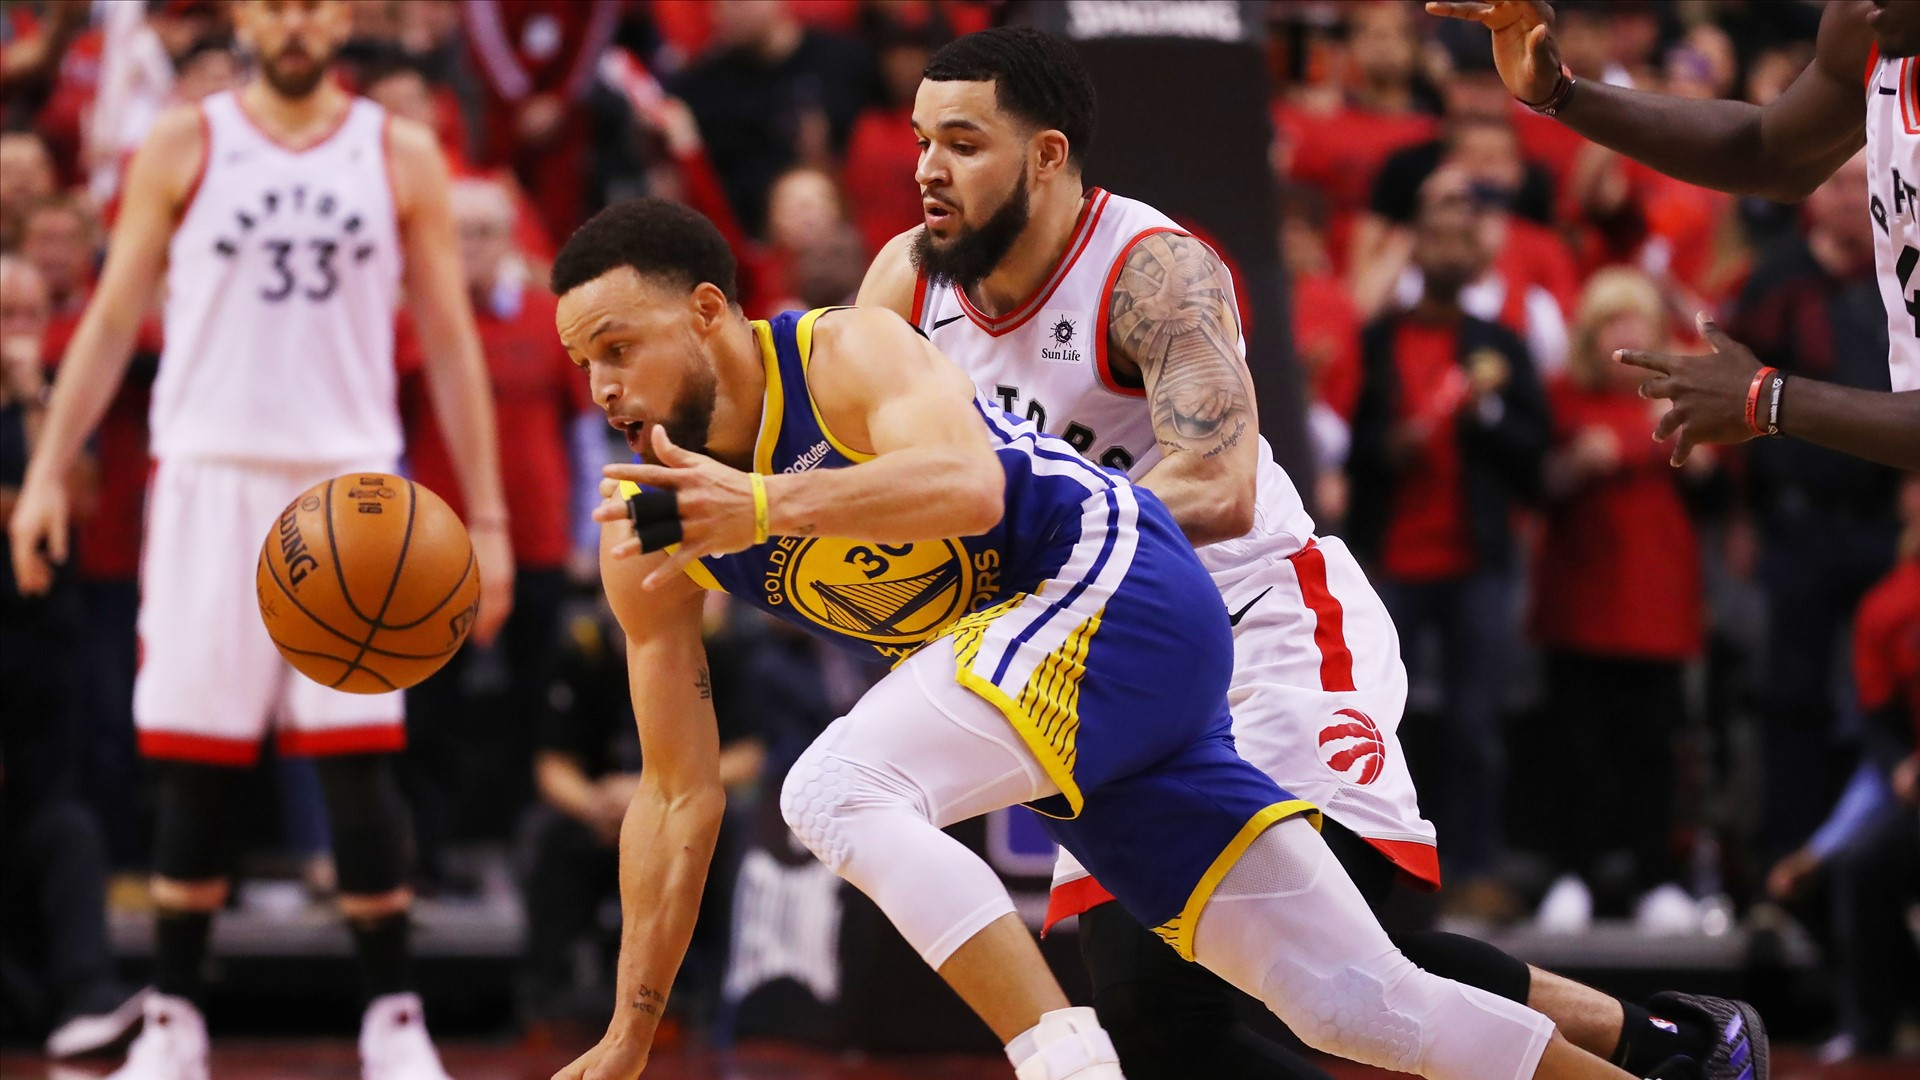 NBA Finals 2019: L2M Report - Stephen Curry travelled prior to Andre Iguodala's clutch game-sealing 3 in Game 2 | NBA.com Canada | The official ...